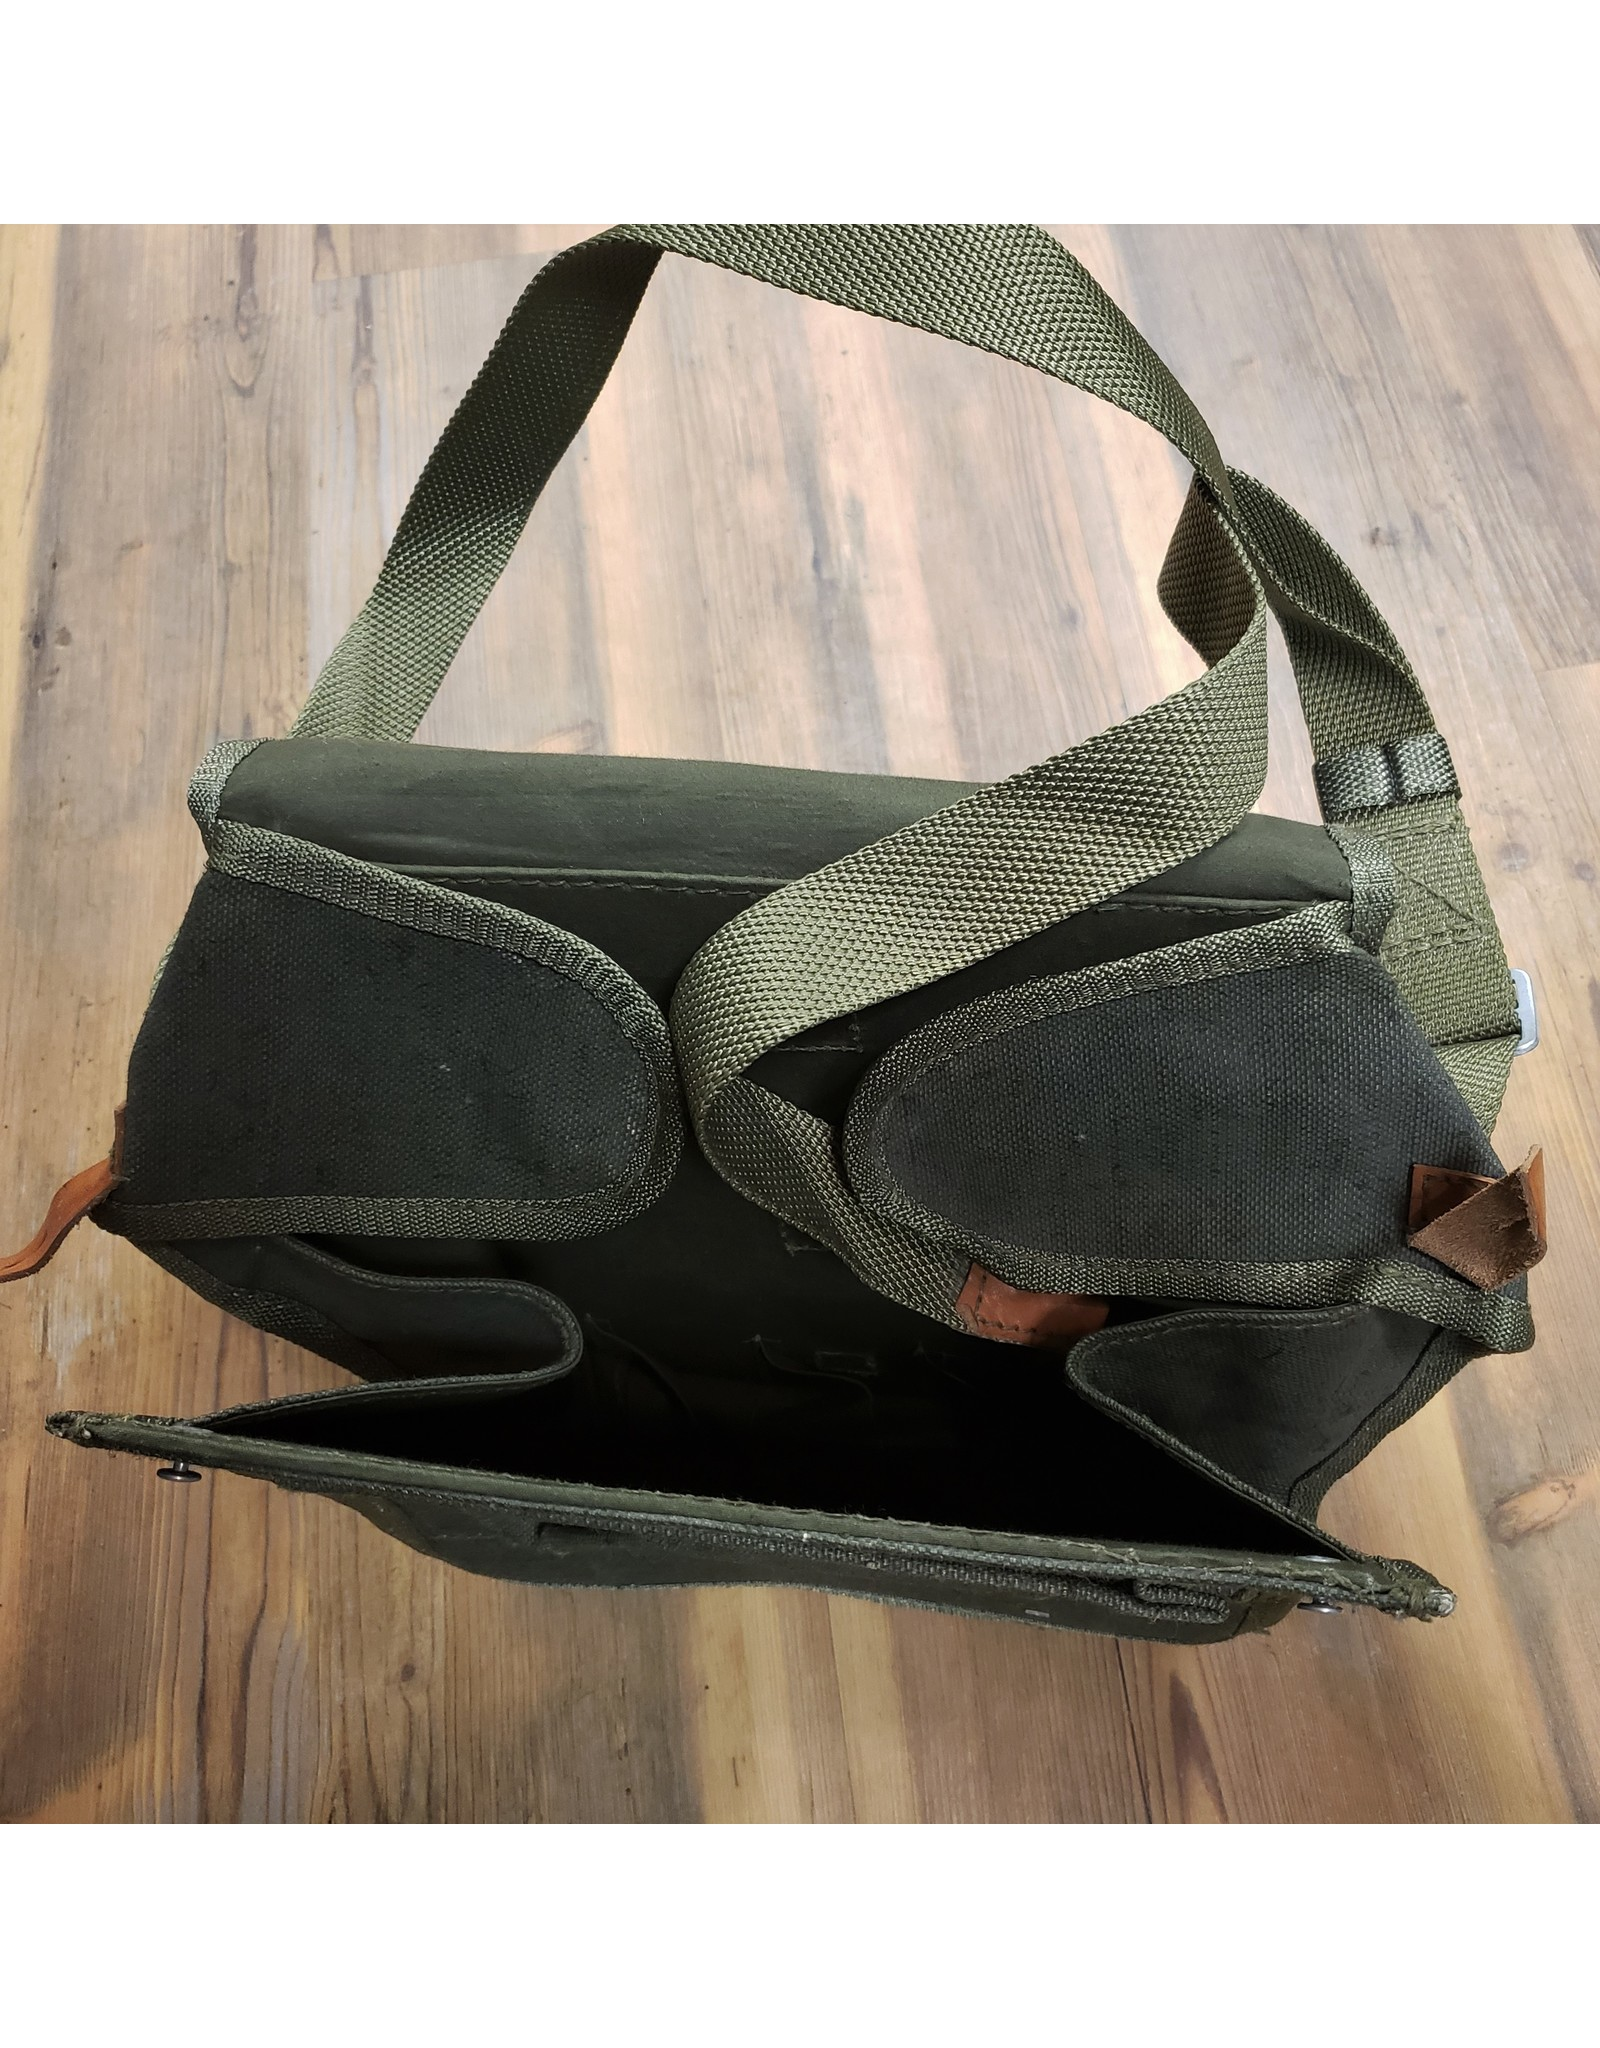 SURPLUS SWEDISH MEDIC BAG